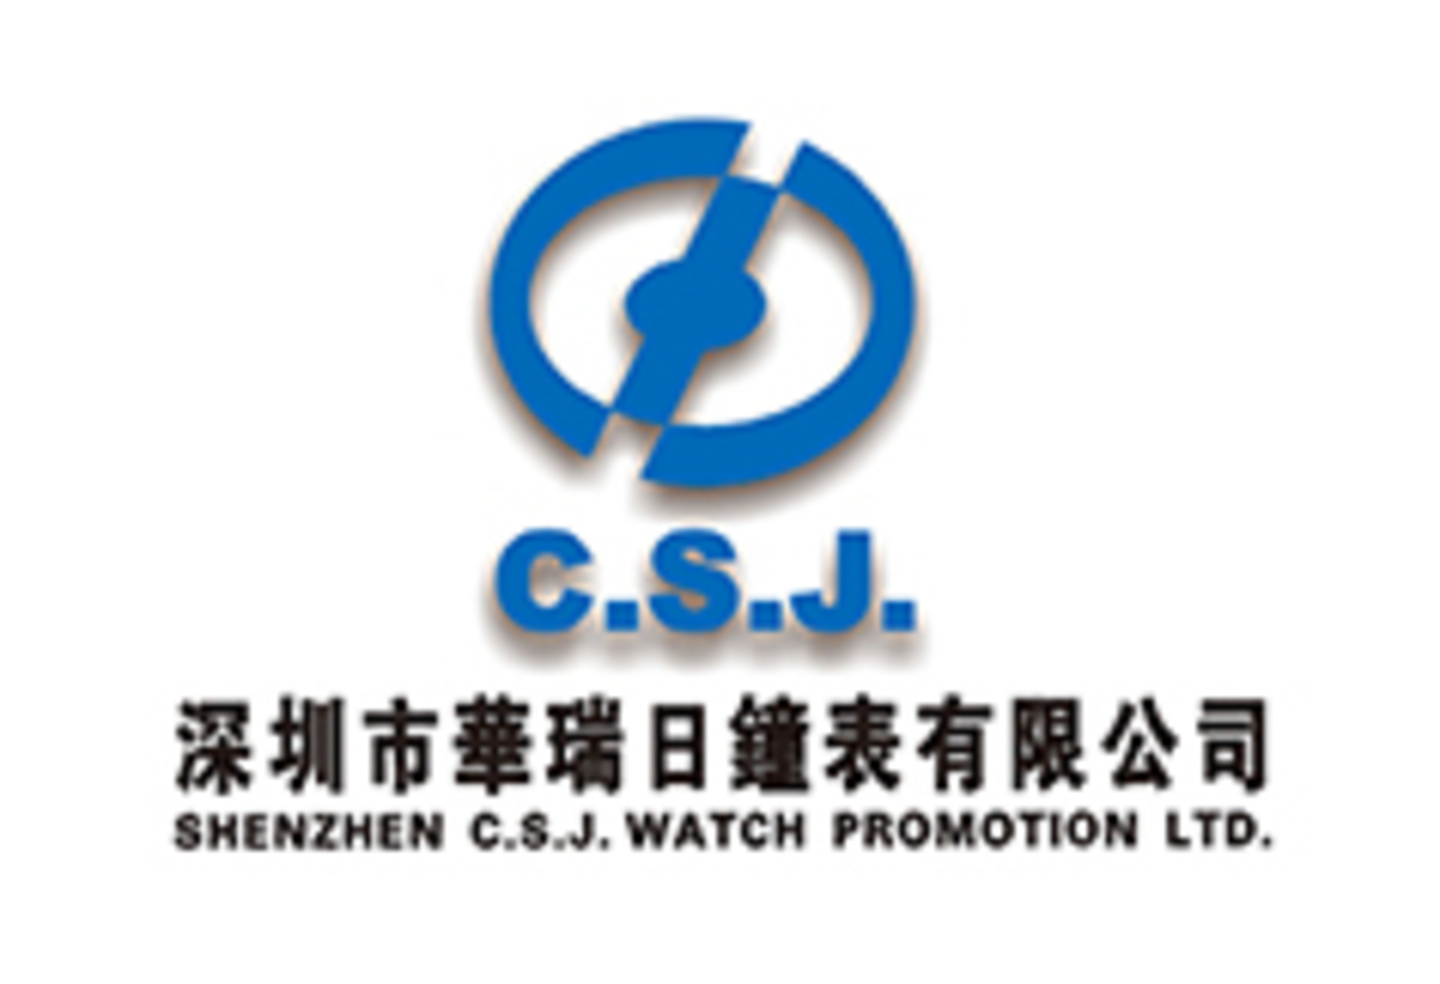 Shenzhen C.S.J. Watch Promotion Ltd.